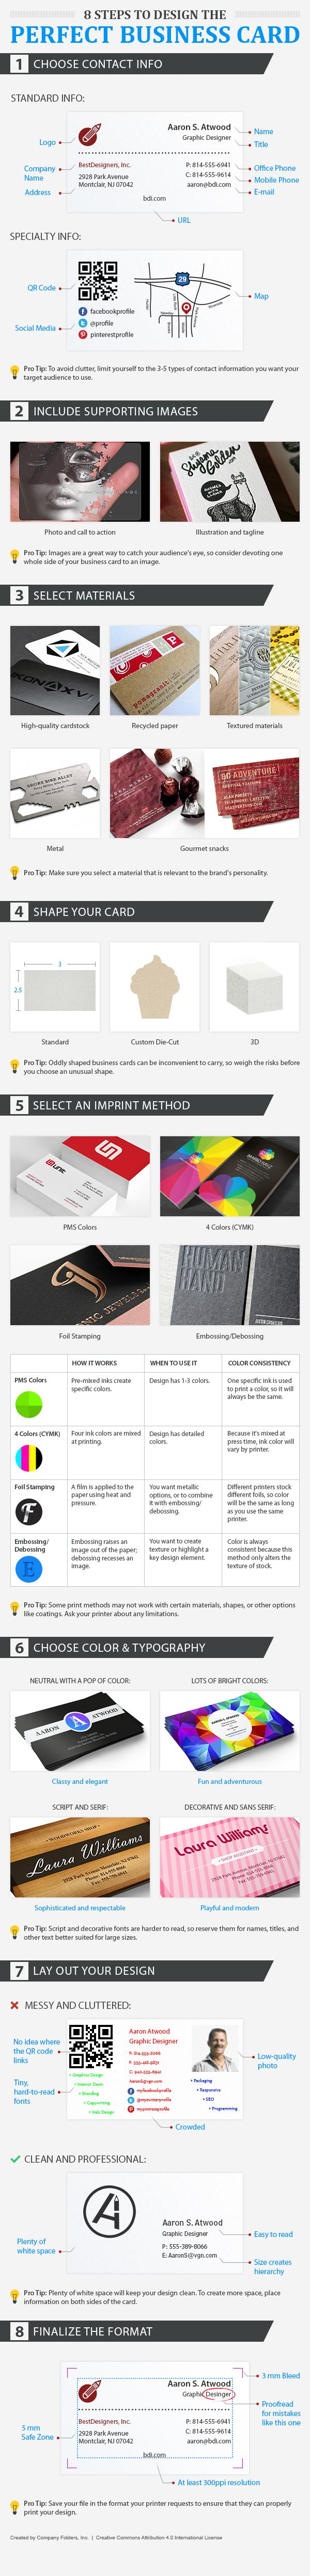 how to improve your business cards for networking business cards